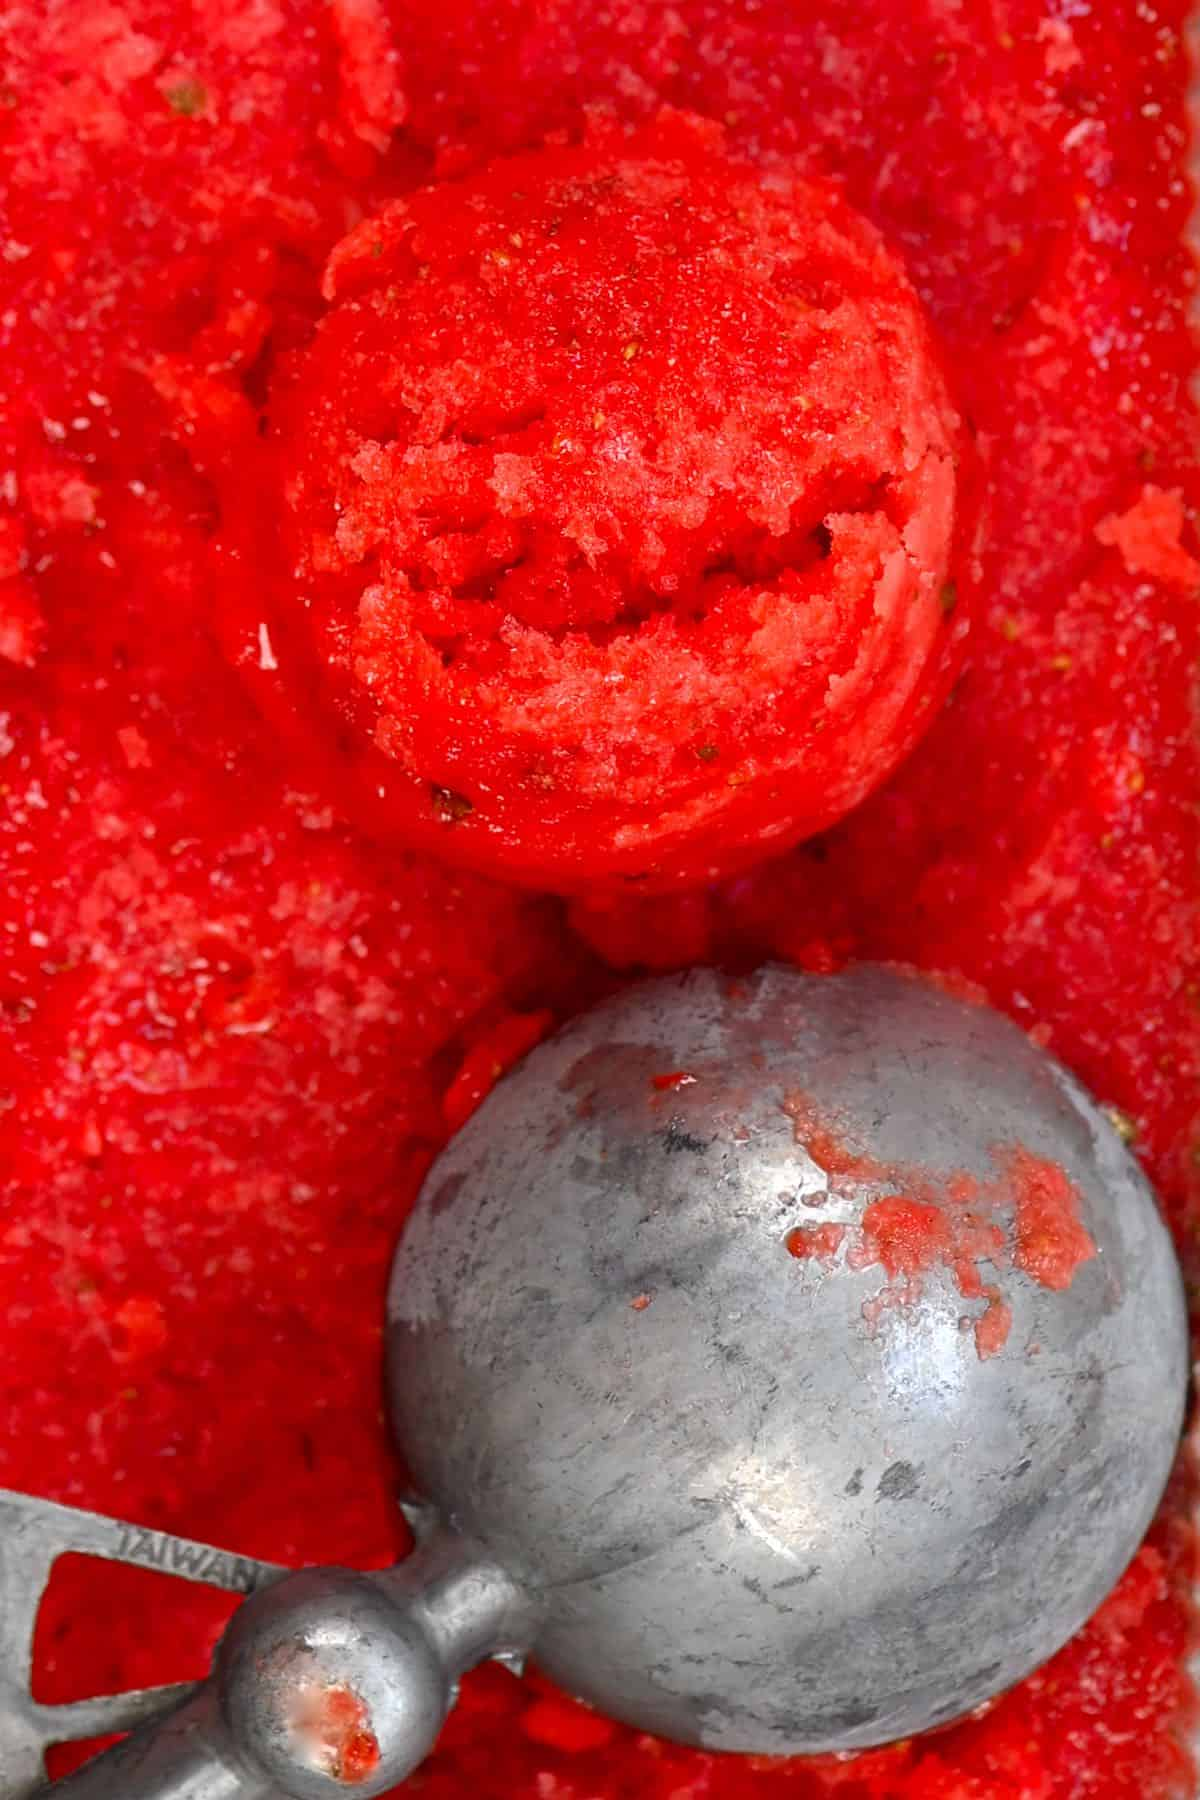 close up of a strawberry sorbet ball with an ice cream scoop